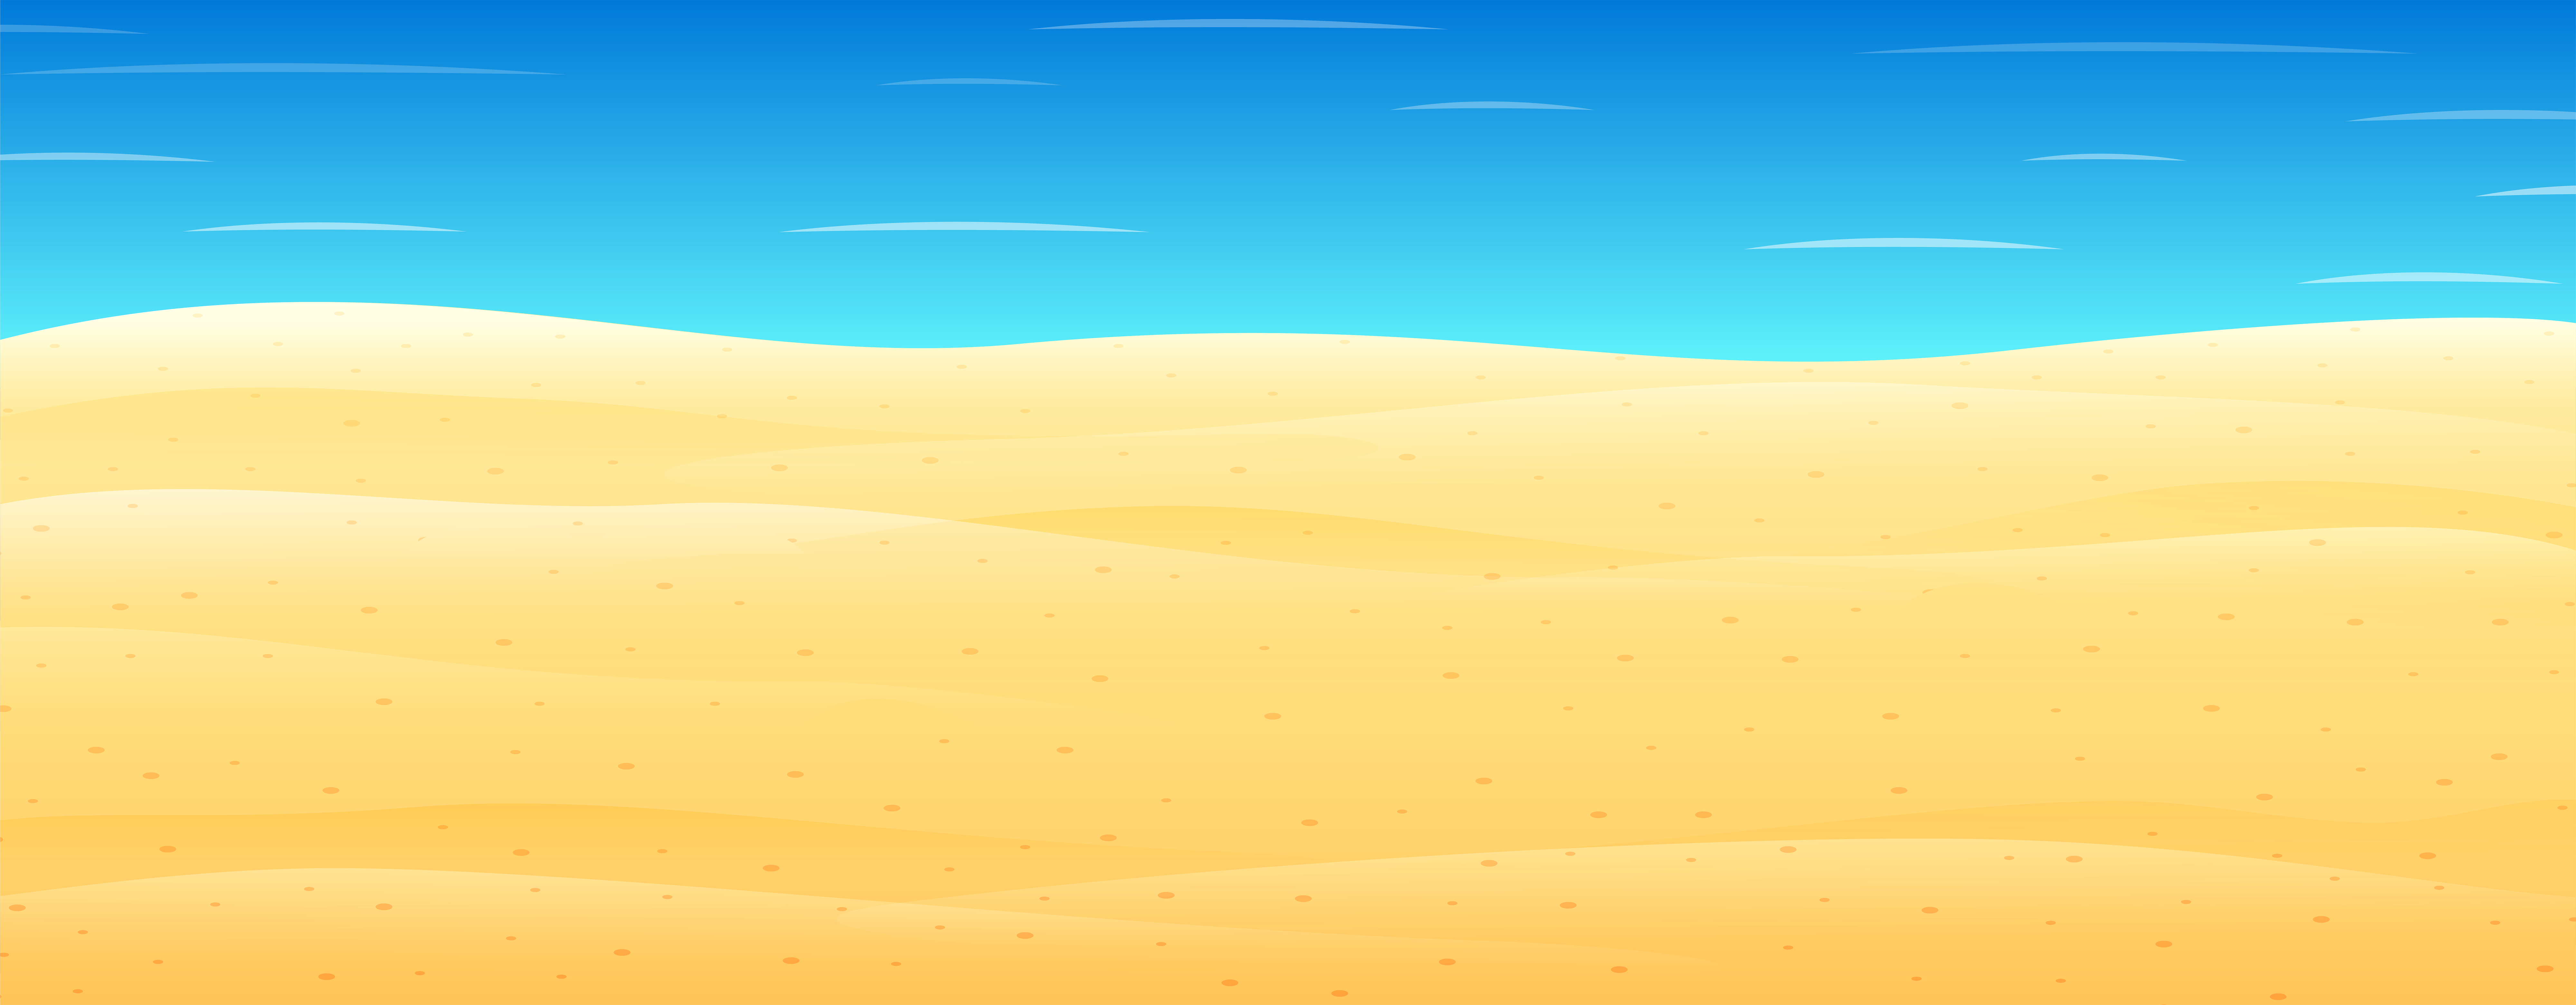 Sand Sea Free PNG Clip Art Image.